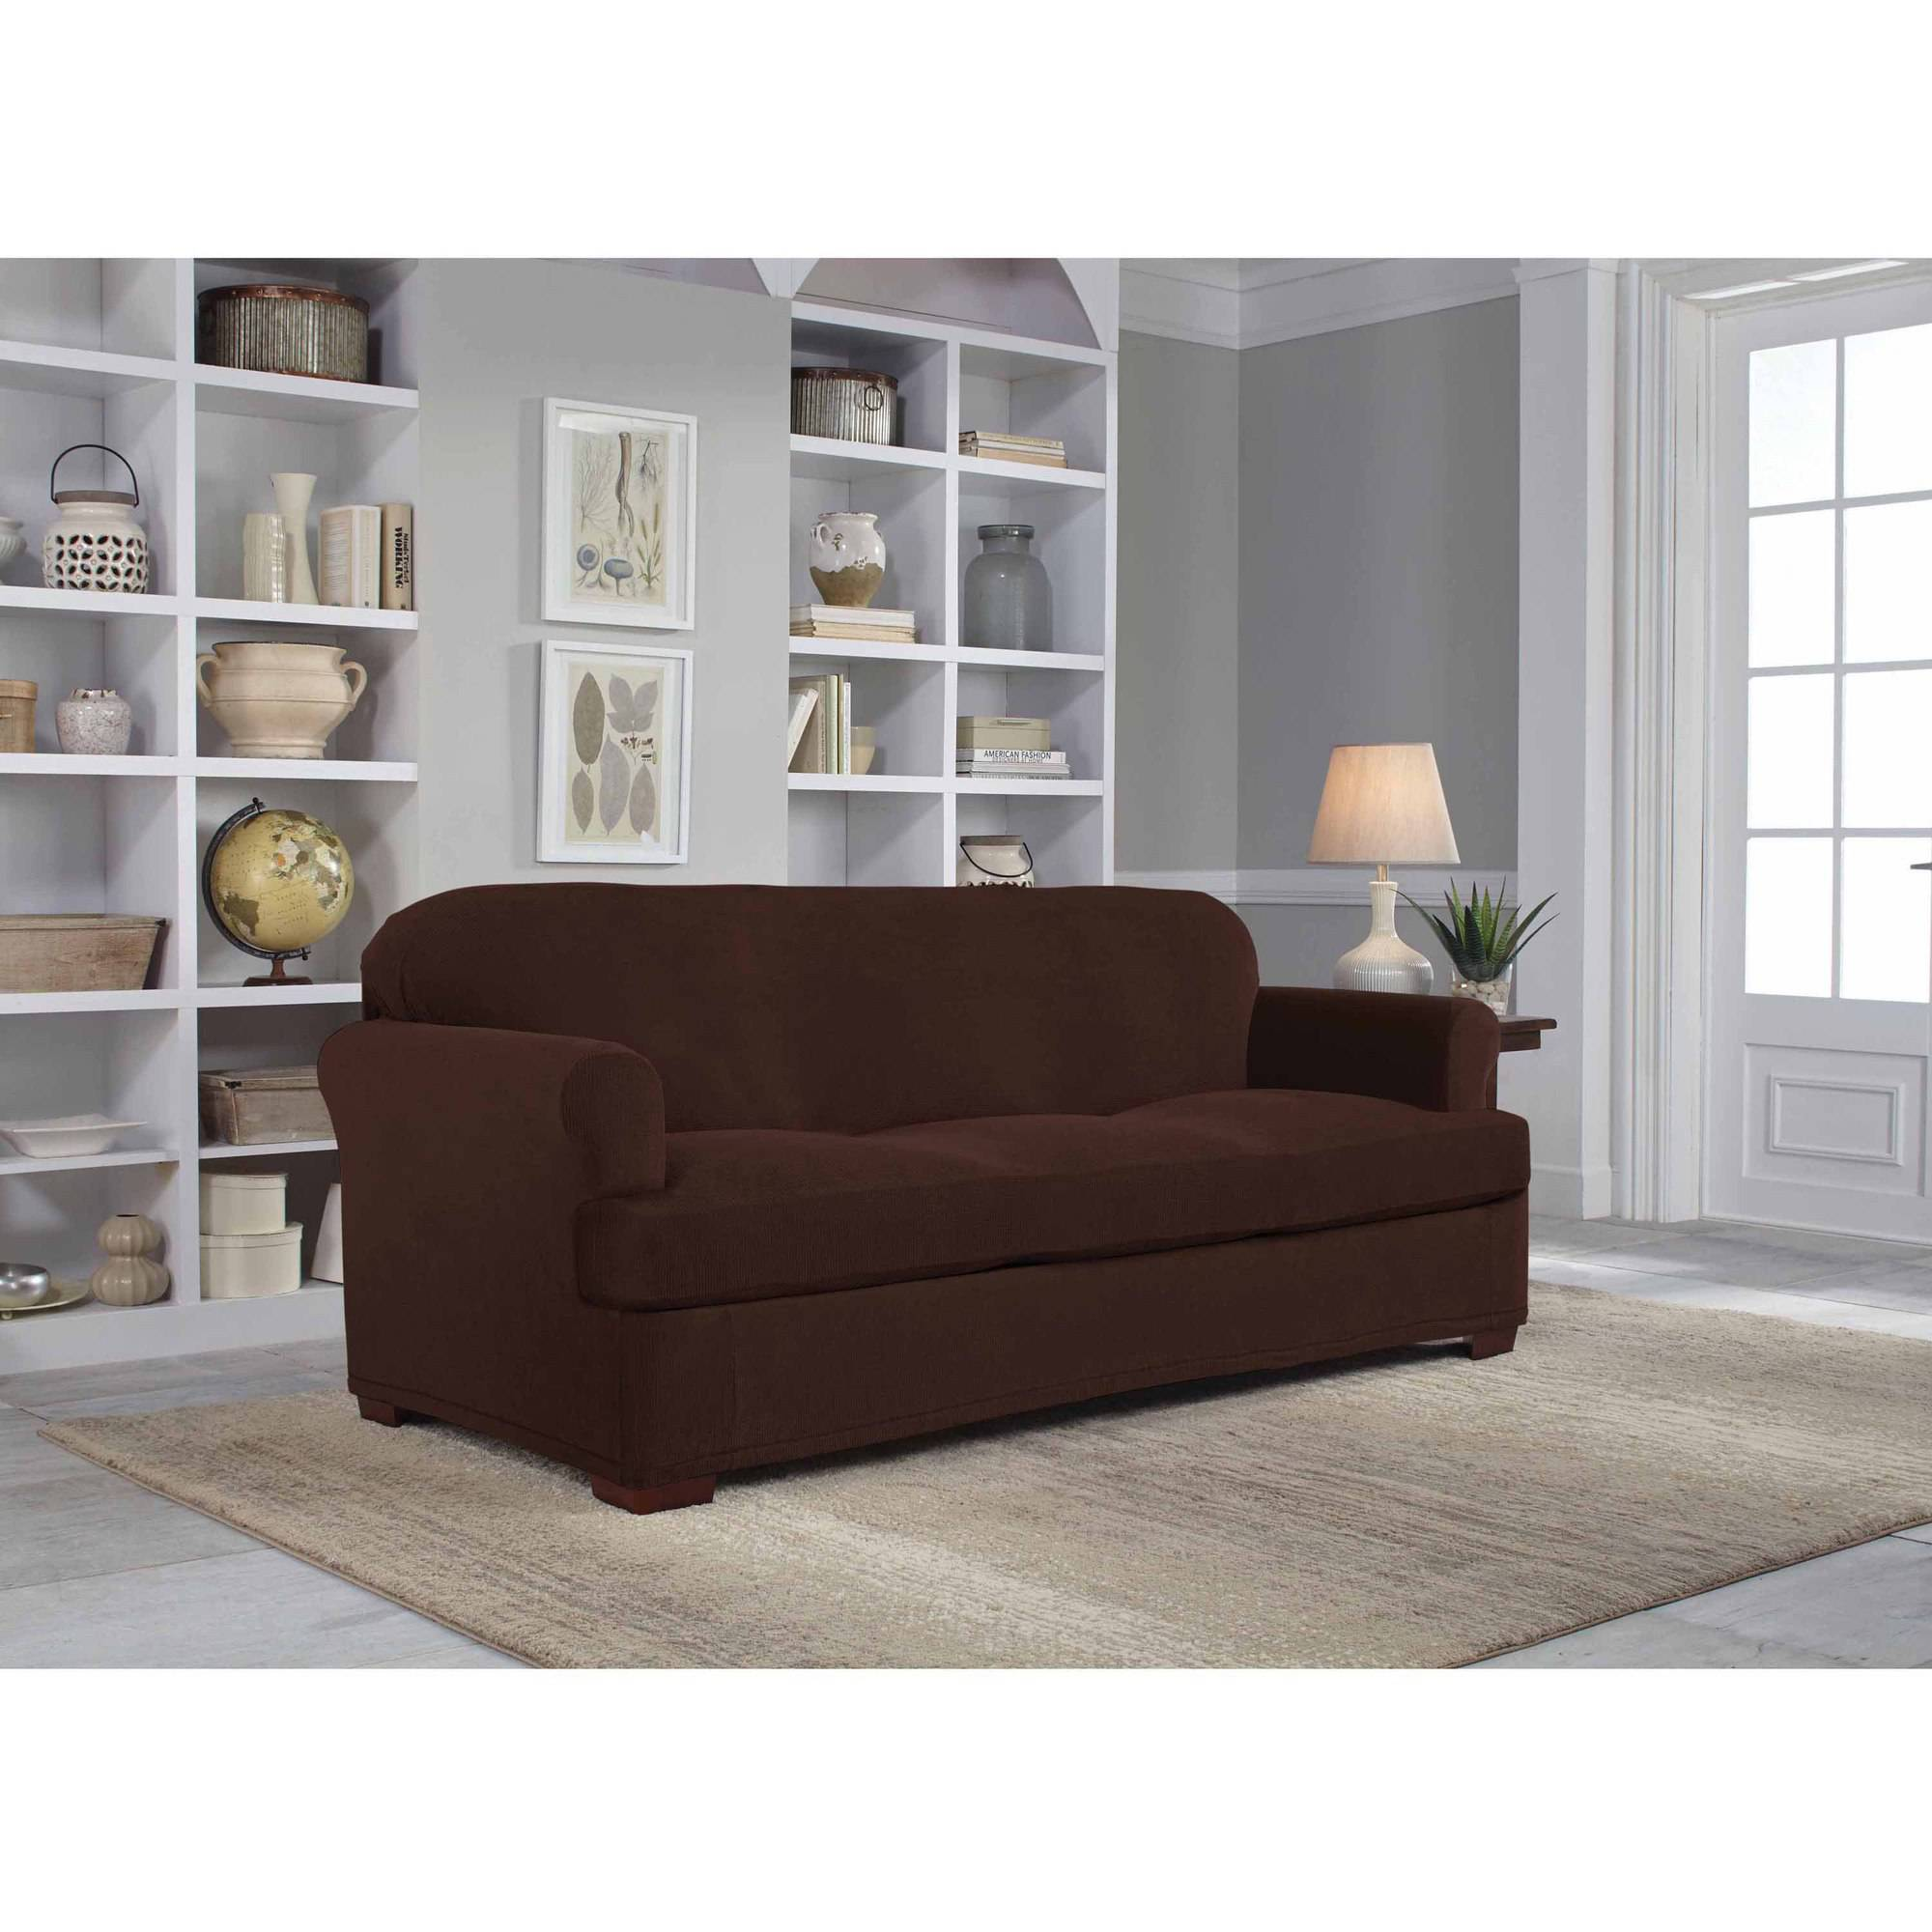 Fitted Slipcovers Couches Serta Stretch Grid Slipcover Sofa 2 Piece T Cushion